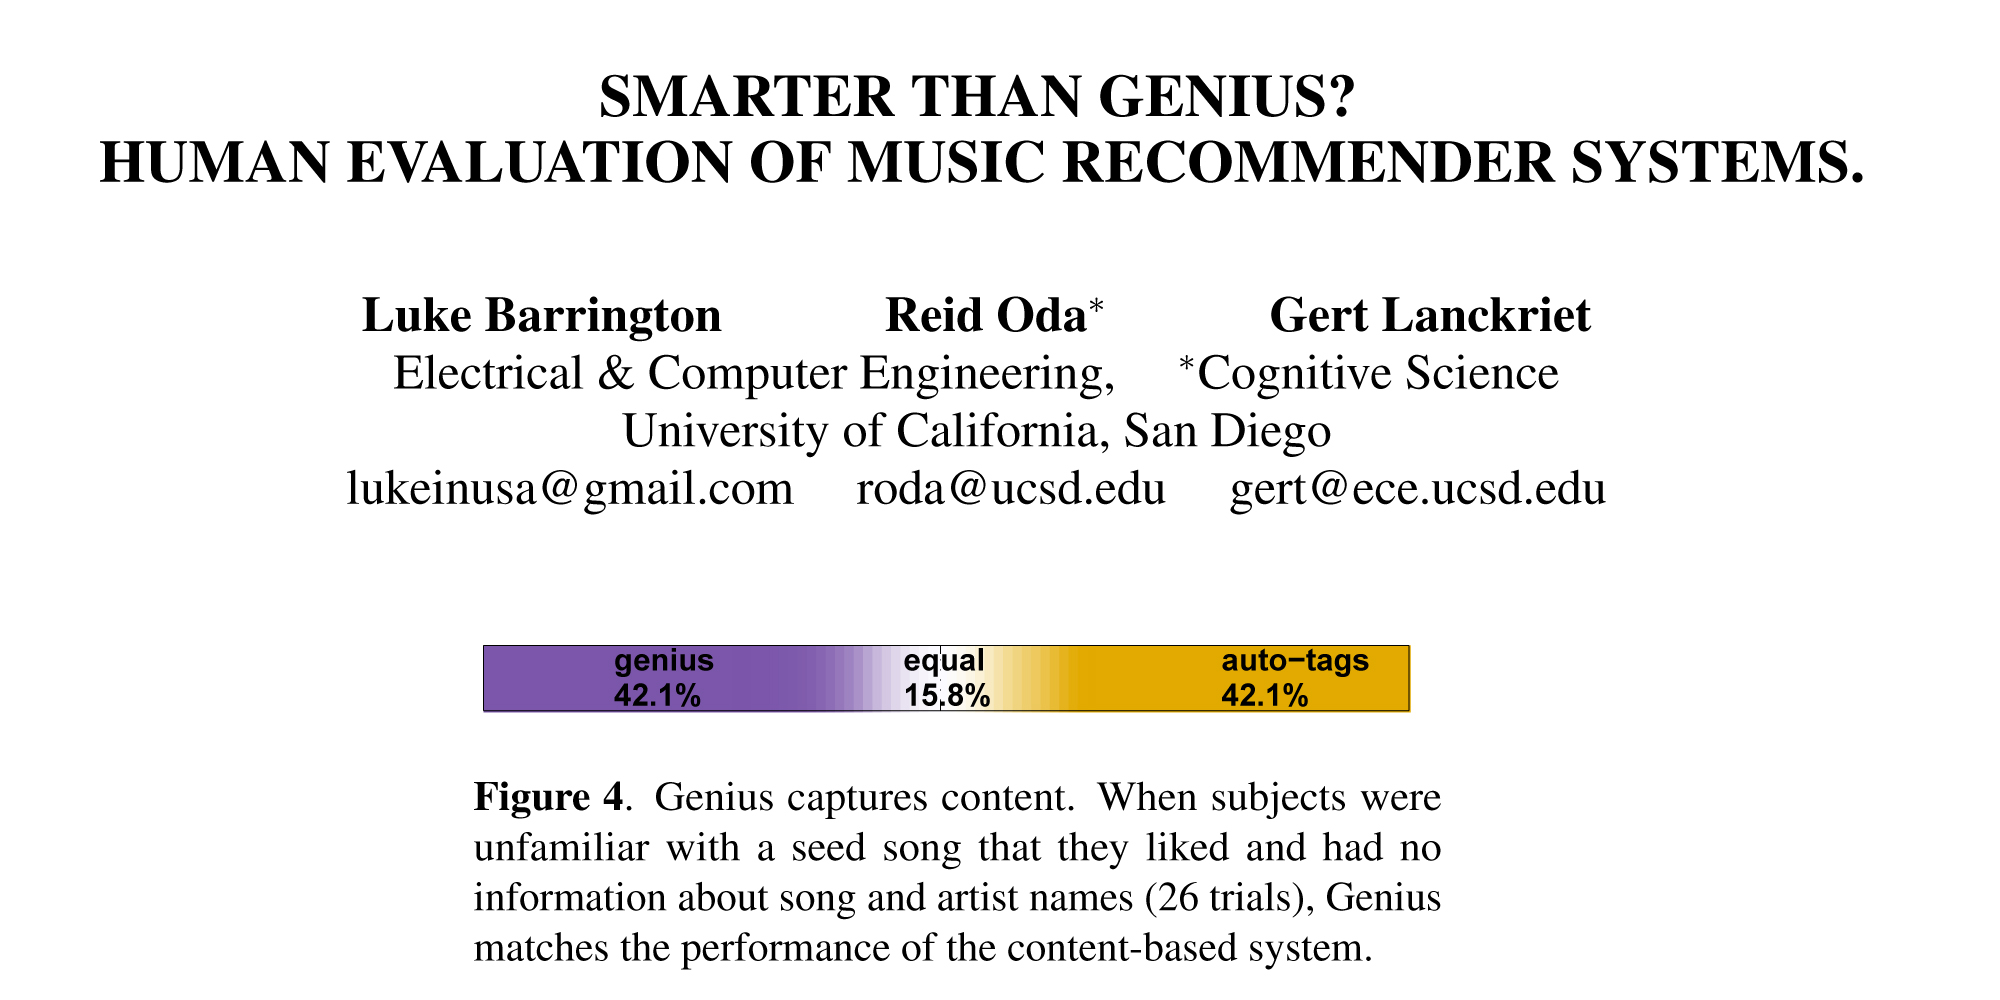 Electrical Engineers Go Head to Head with Genius on Music